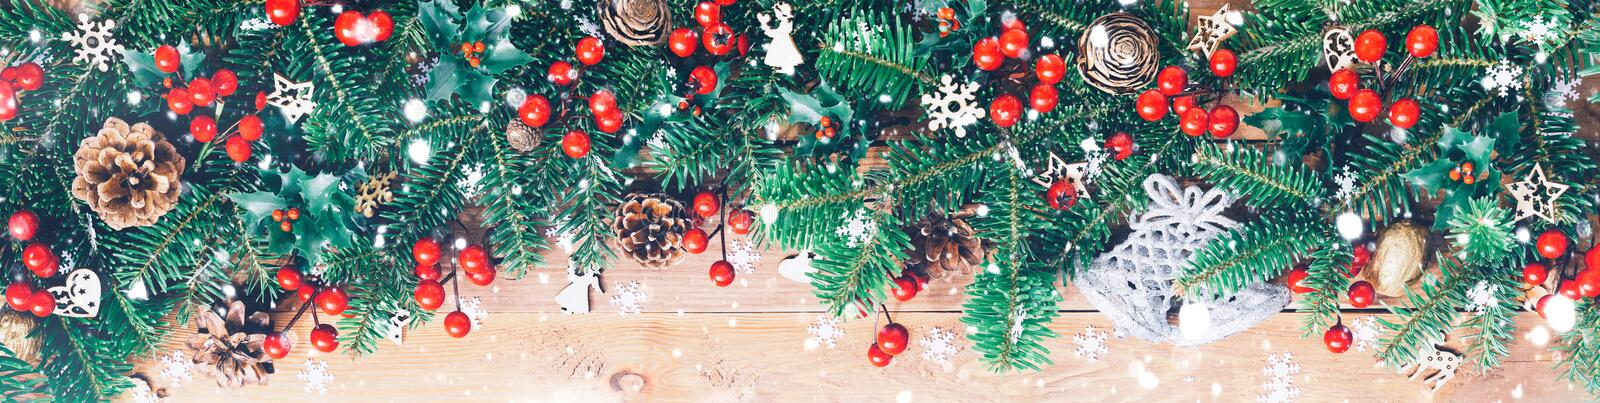 Christmas border with fir branches, red holly berries, cones and snowflakes on wooden background.  stock photos